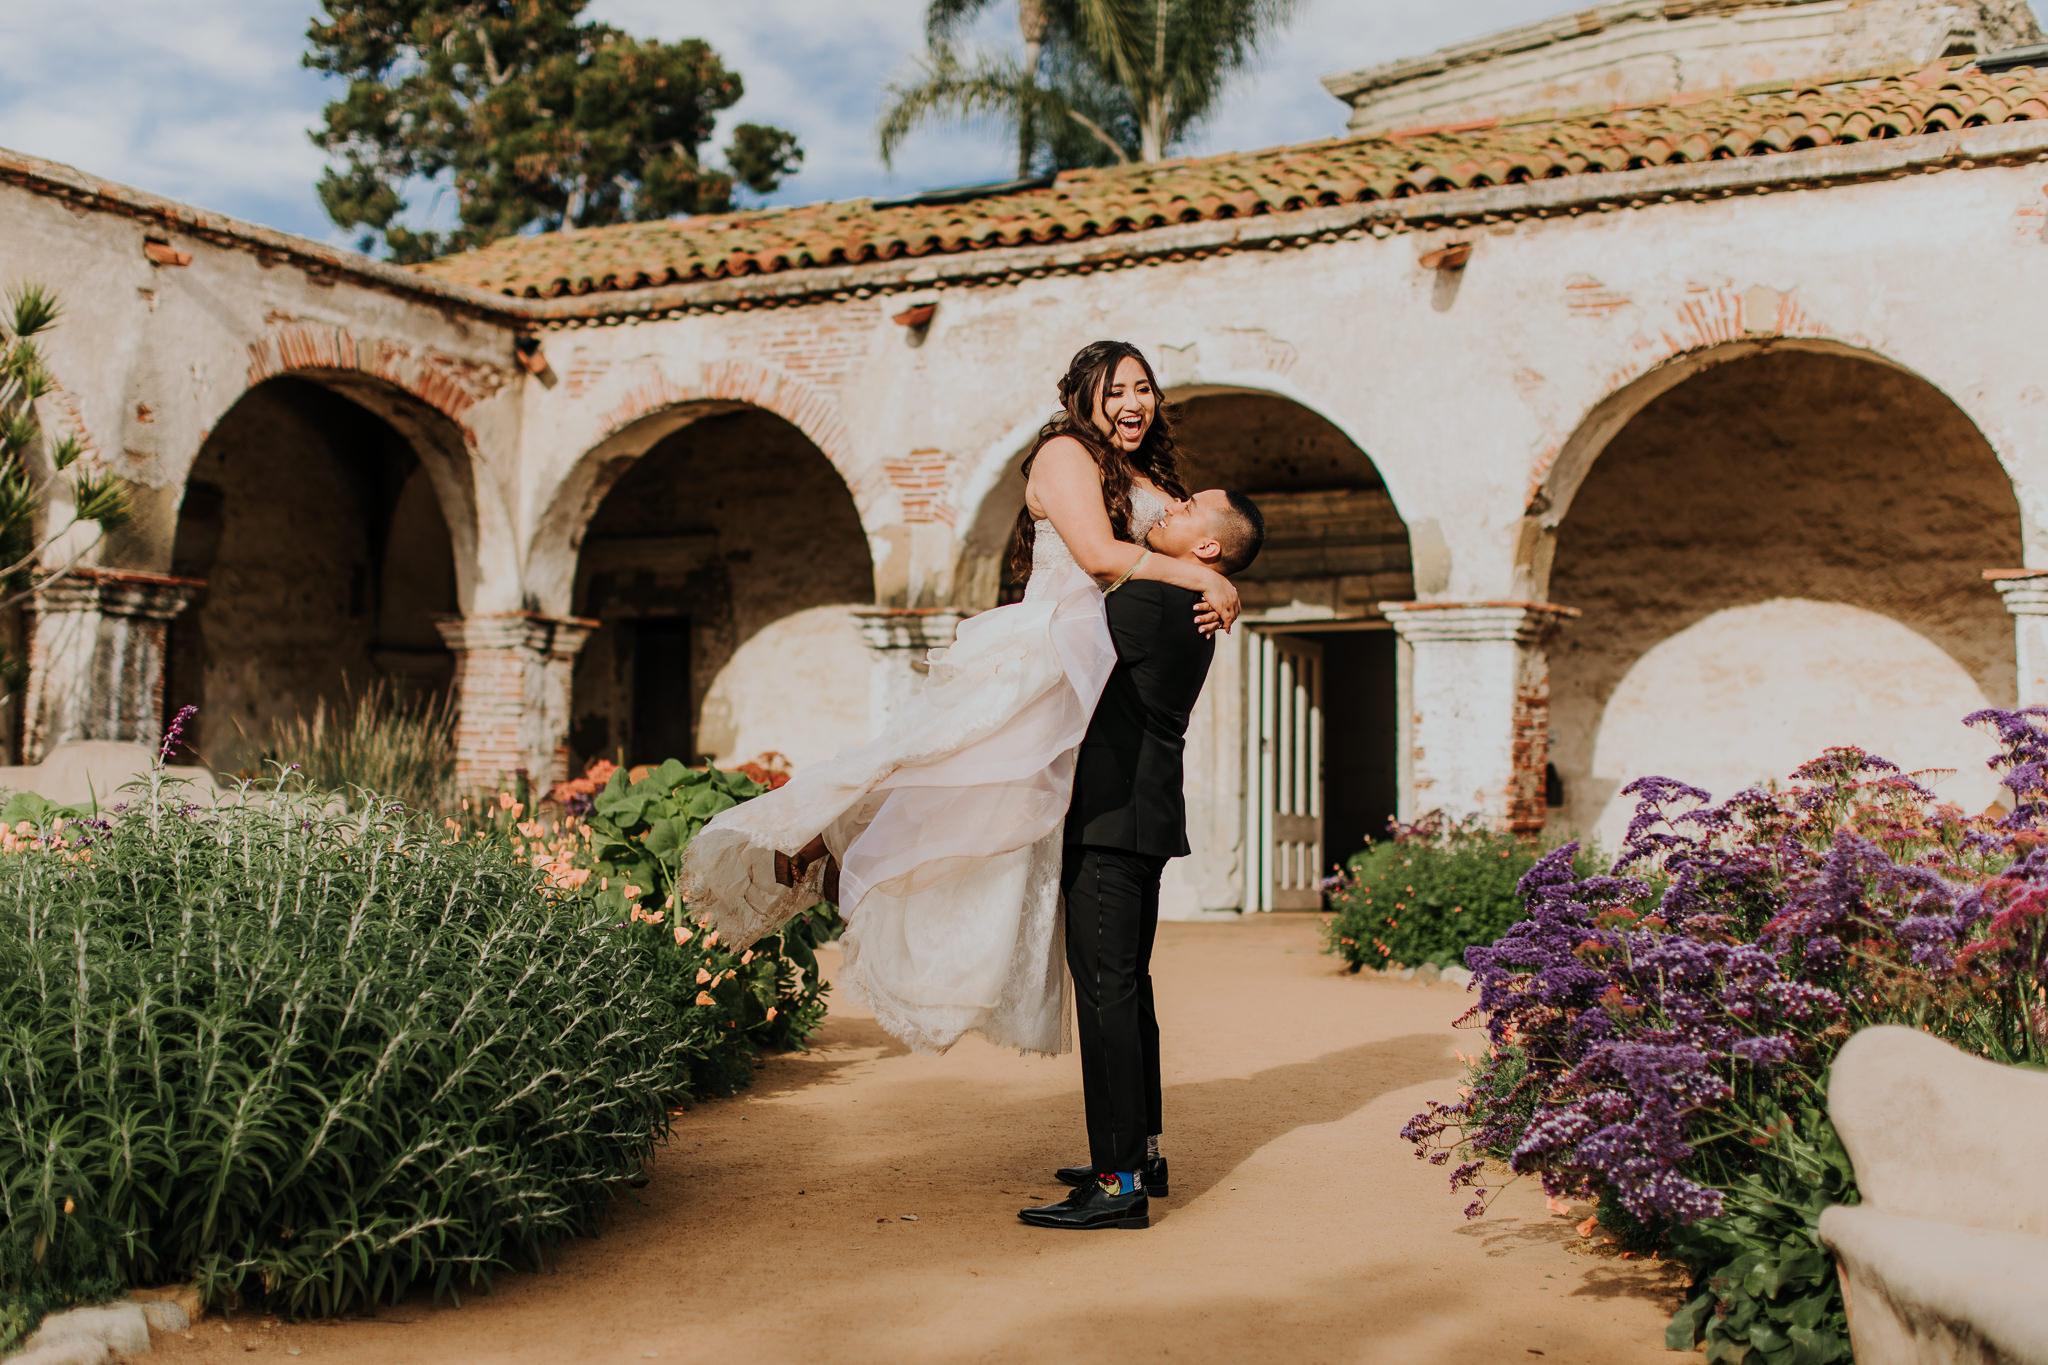 2019-04-05_Brittany_and_Nick_-_Married_-_San_Juan_Capistrano-100.jpg